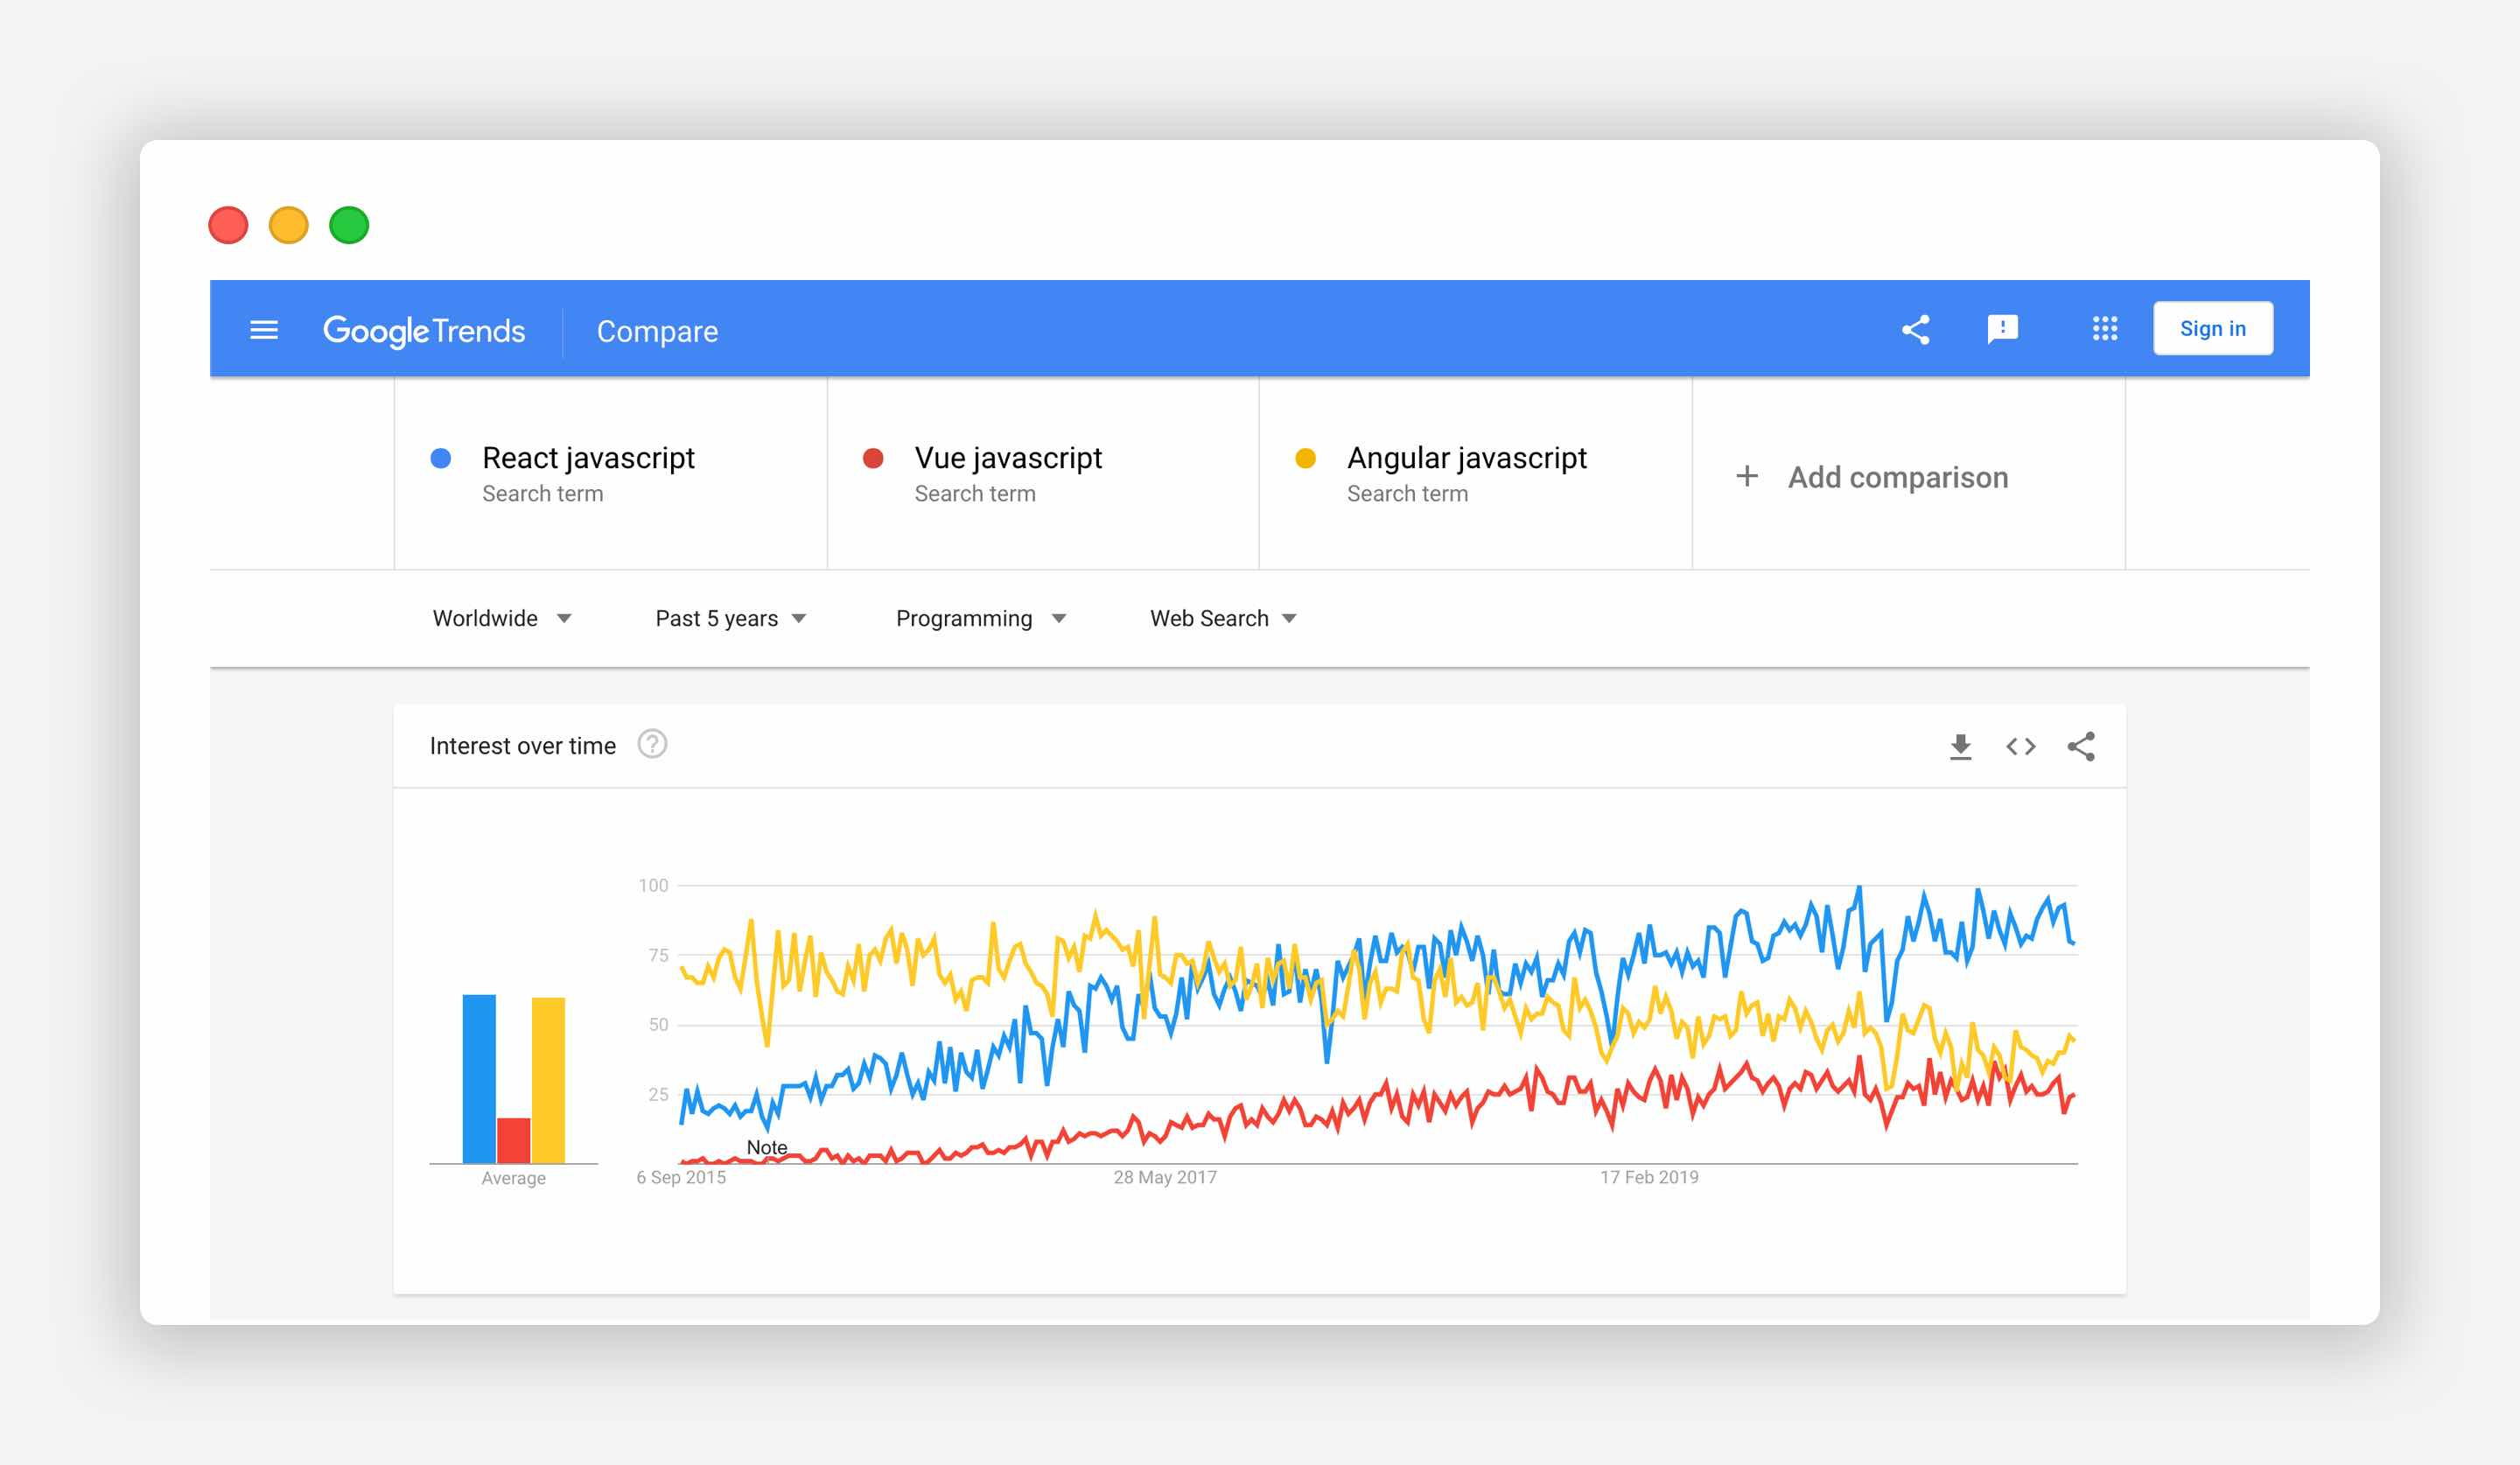 React Vue Angular Google Trends comparison Worldwide search